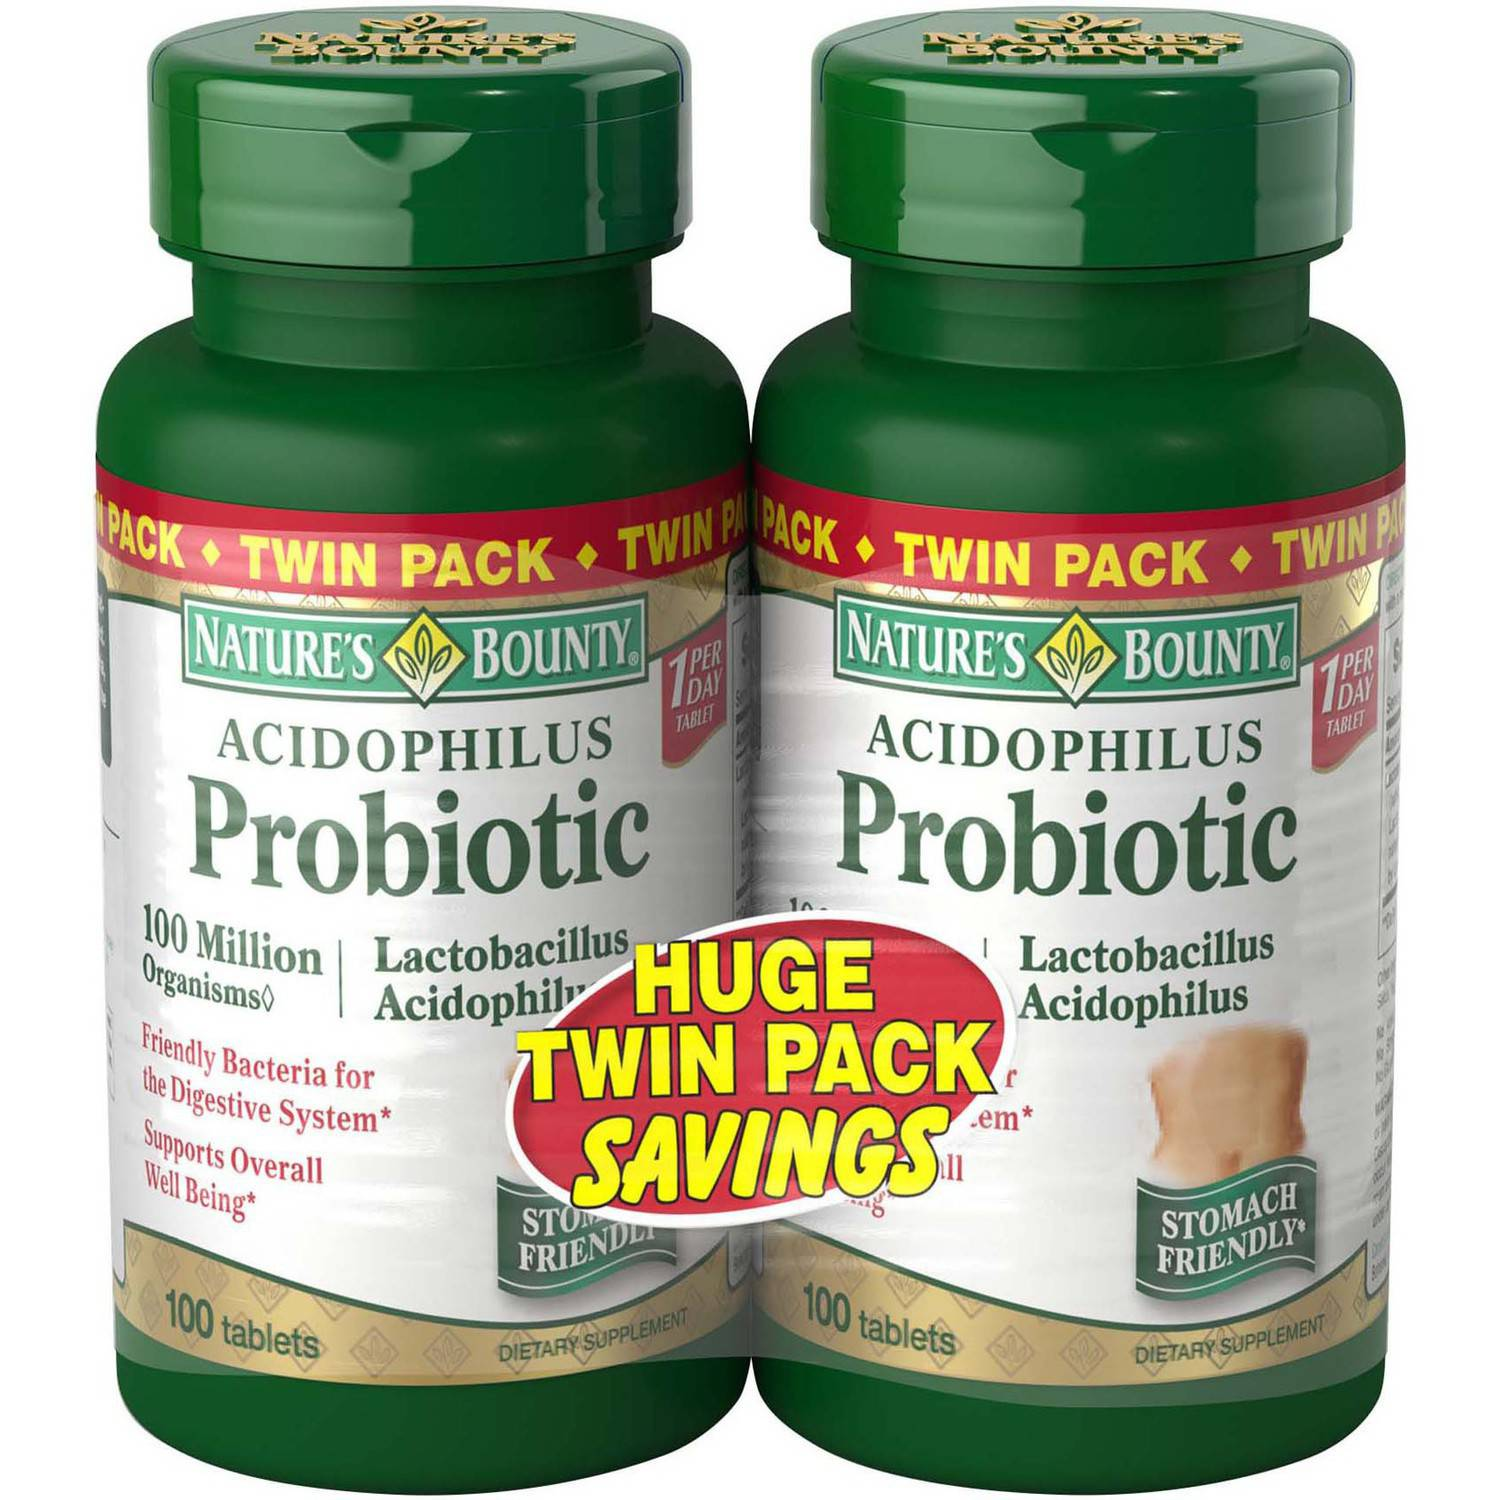 Nature's Bounty Acidophilus Probiotic Dietary Supplement Tablets, 100 count, (Pack of 2)